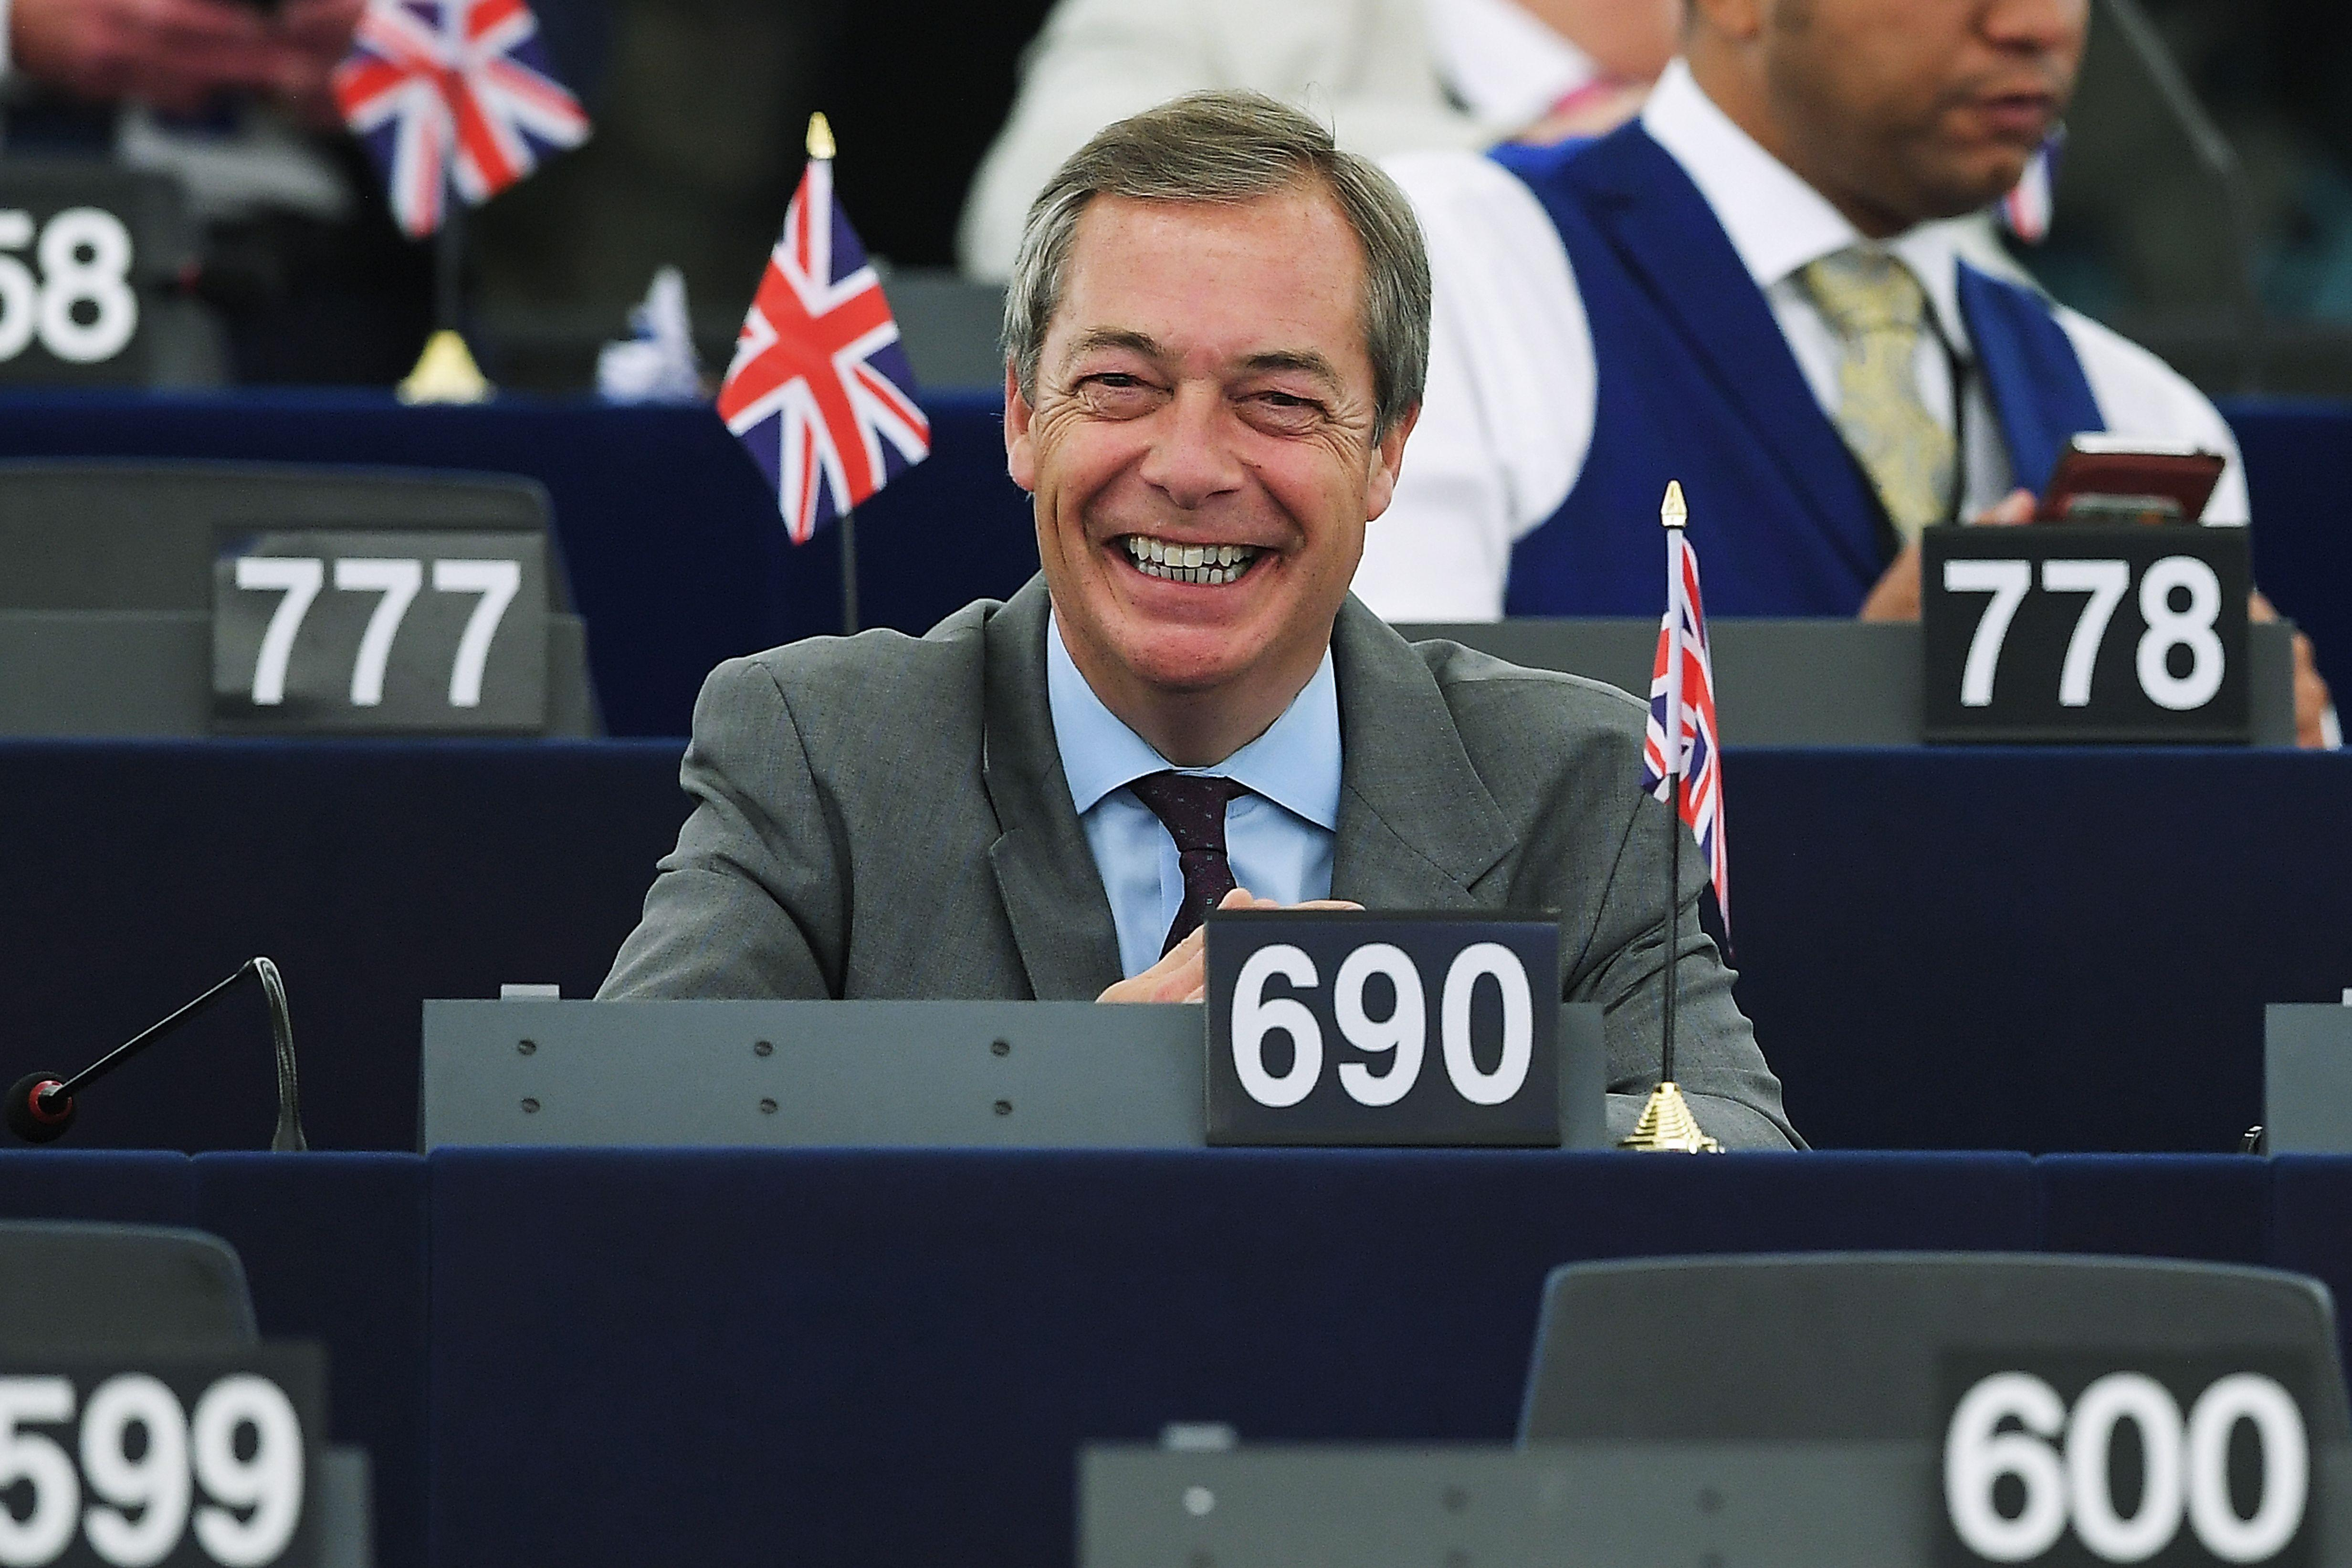 Nigel Farage is a contender for next UK ambassador to the US — according to bookmakers